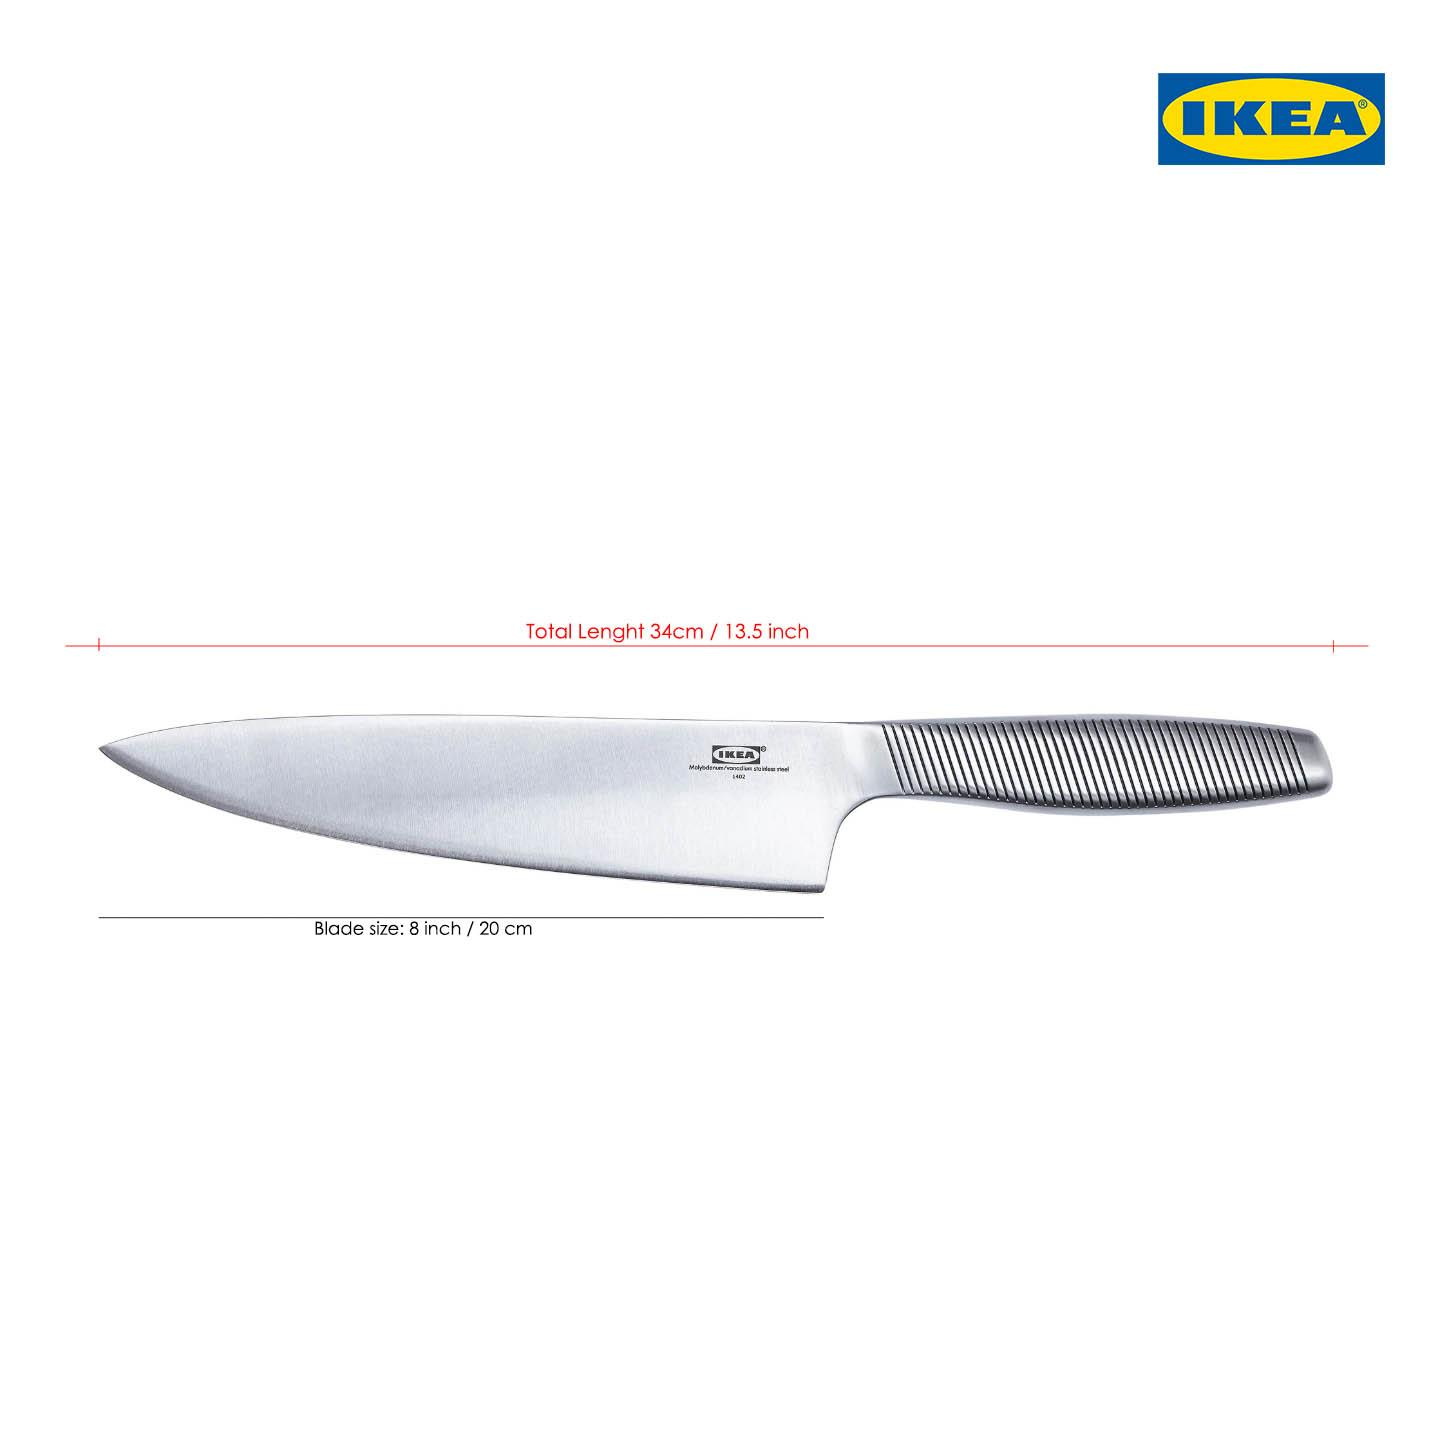 Ikea Küche 20cm Ikea 365 Chef Knife Pure Stainless Steel 20cm 8 Inch Made In Sweden Ikea